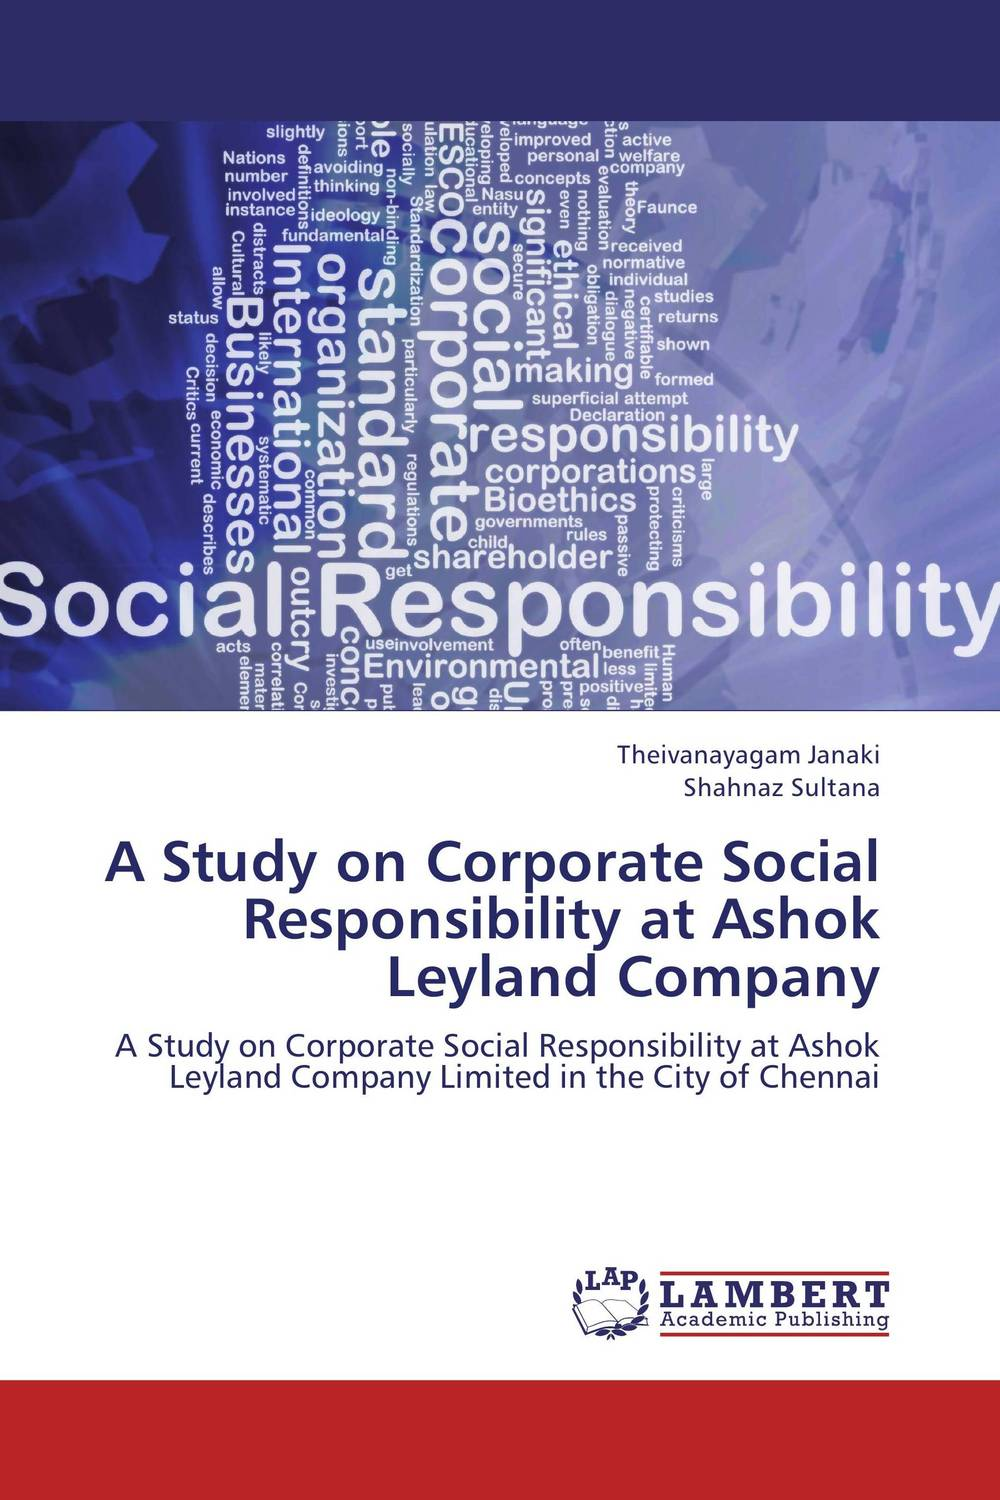 A Study on Corporate Social Responsibility at Ashok Leyland Company leyland s a curious guide to london tales of a city